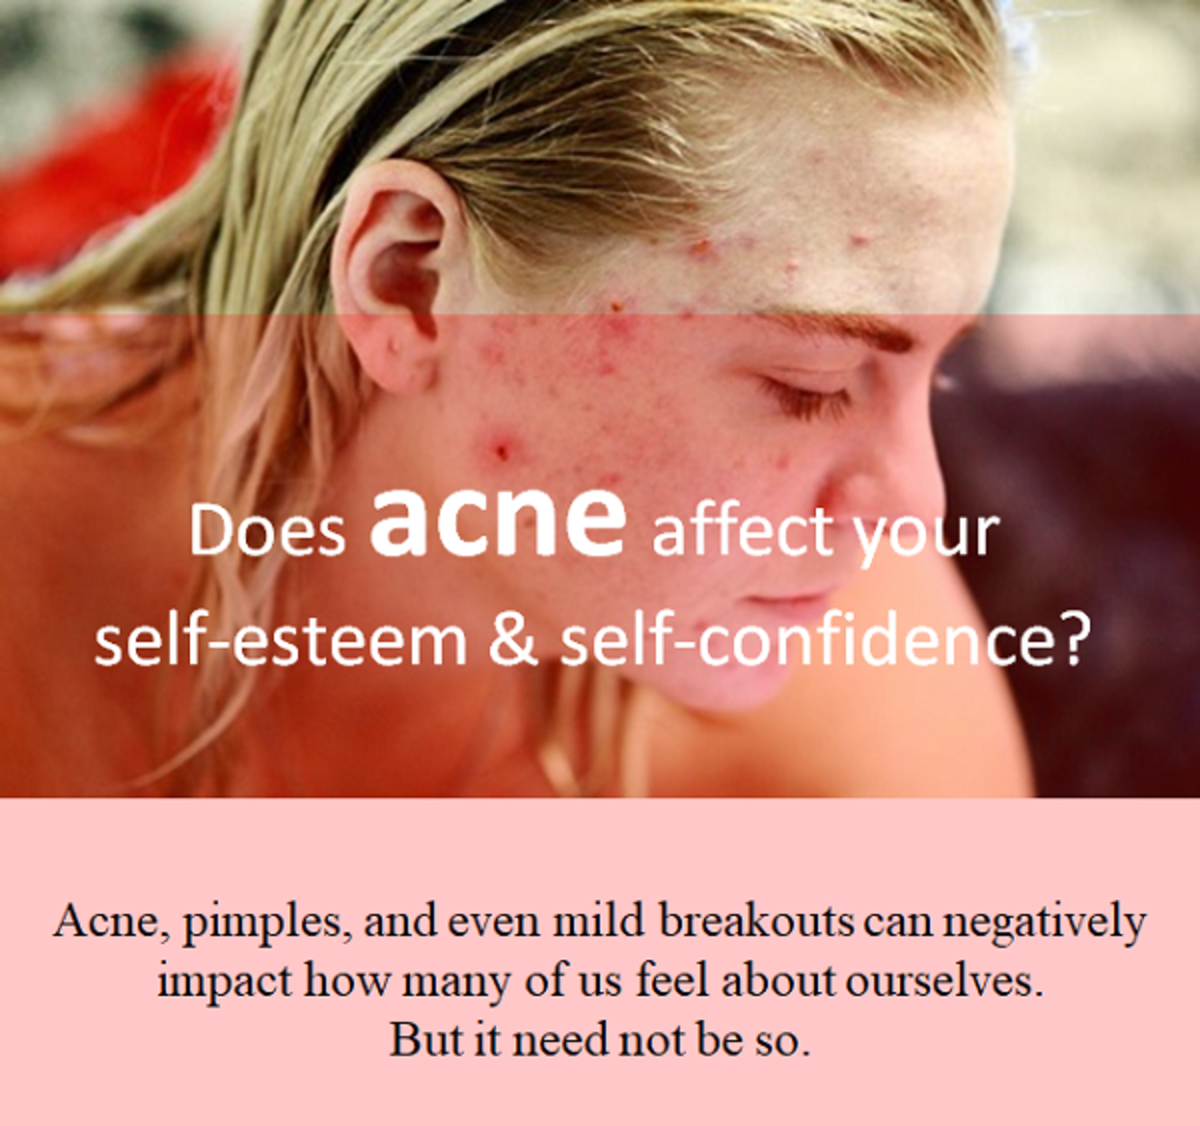 Does Acne Give You Self-Esteem Problems?